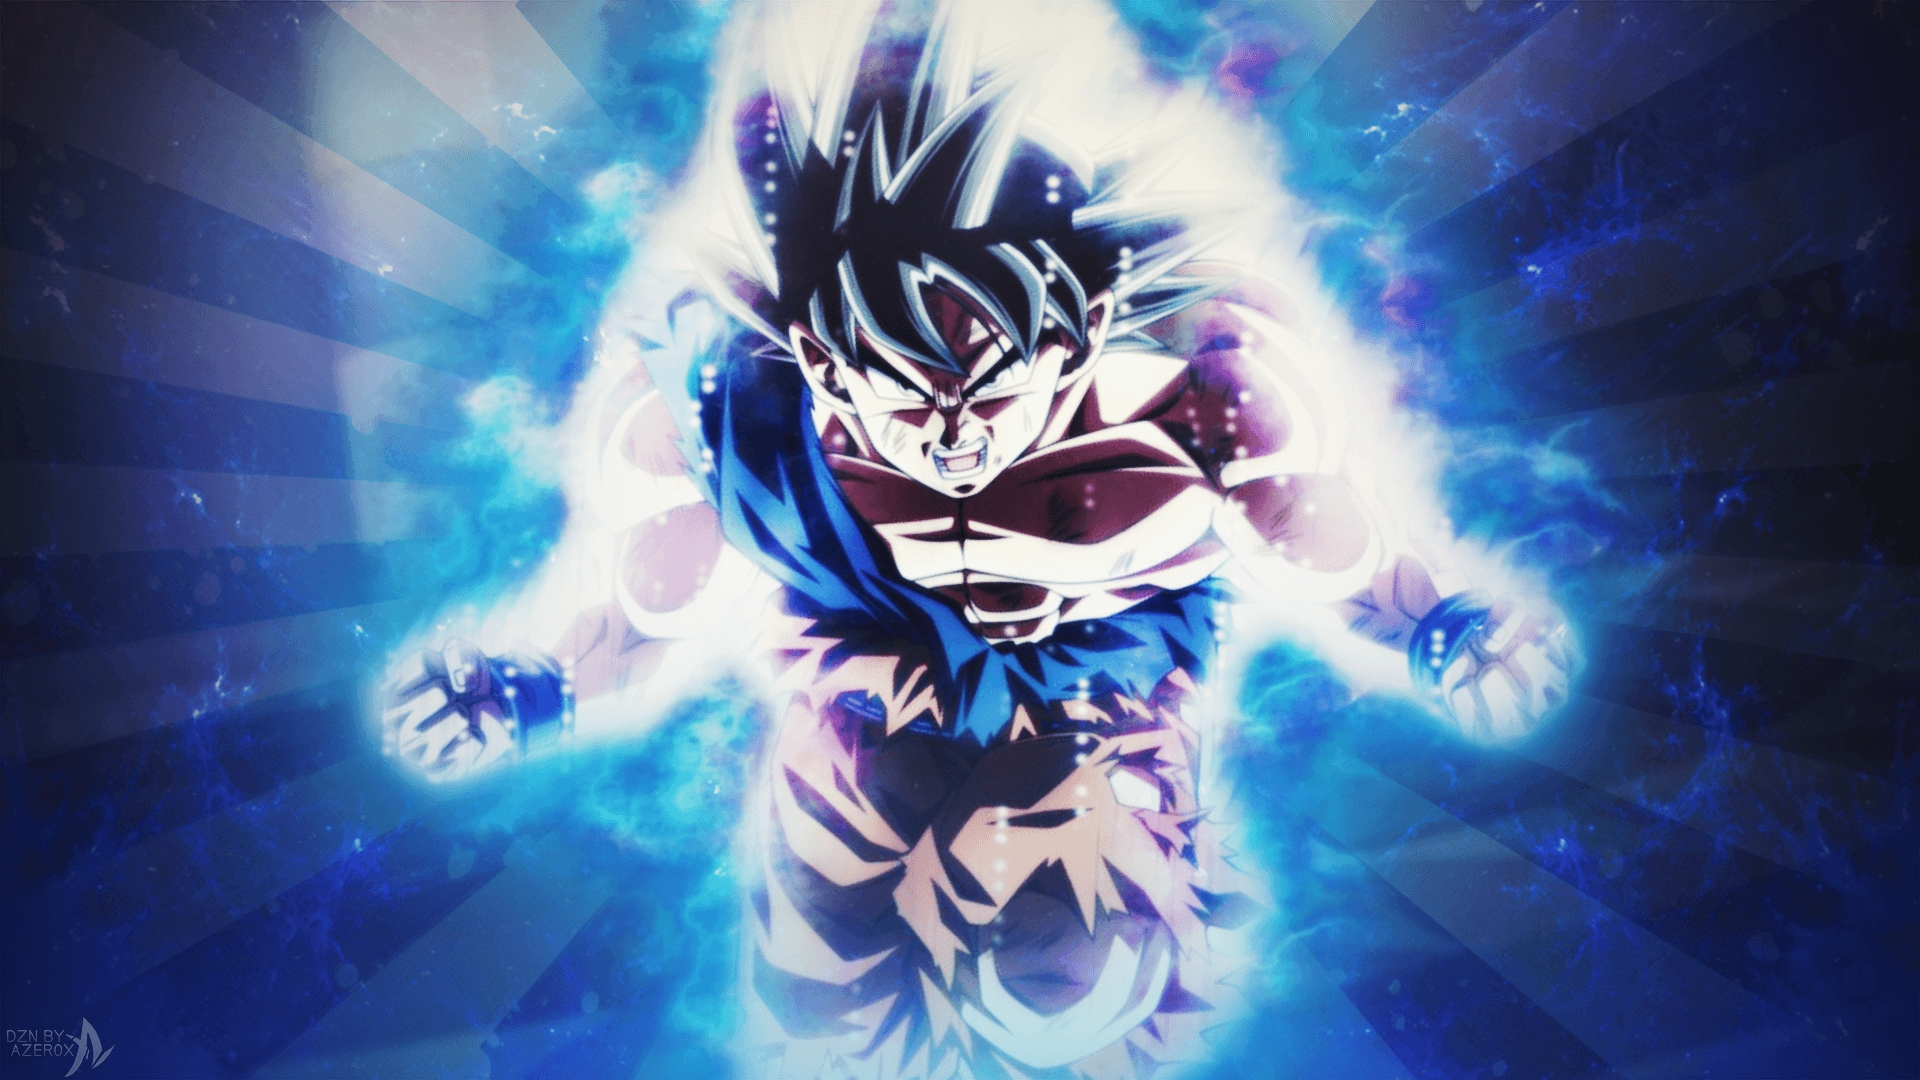 goku ultra instinct wallpapers - wallpaper cave